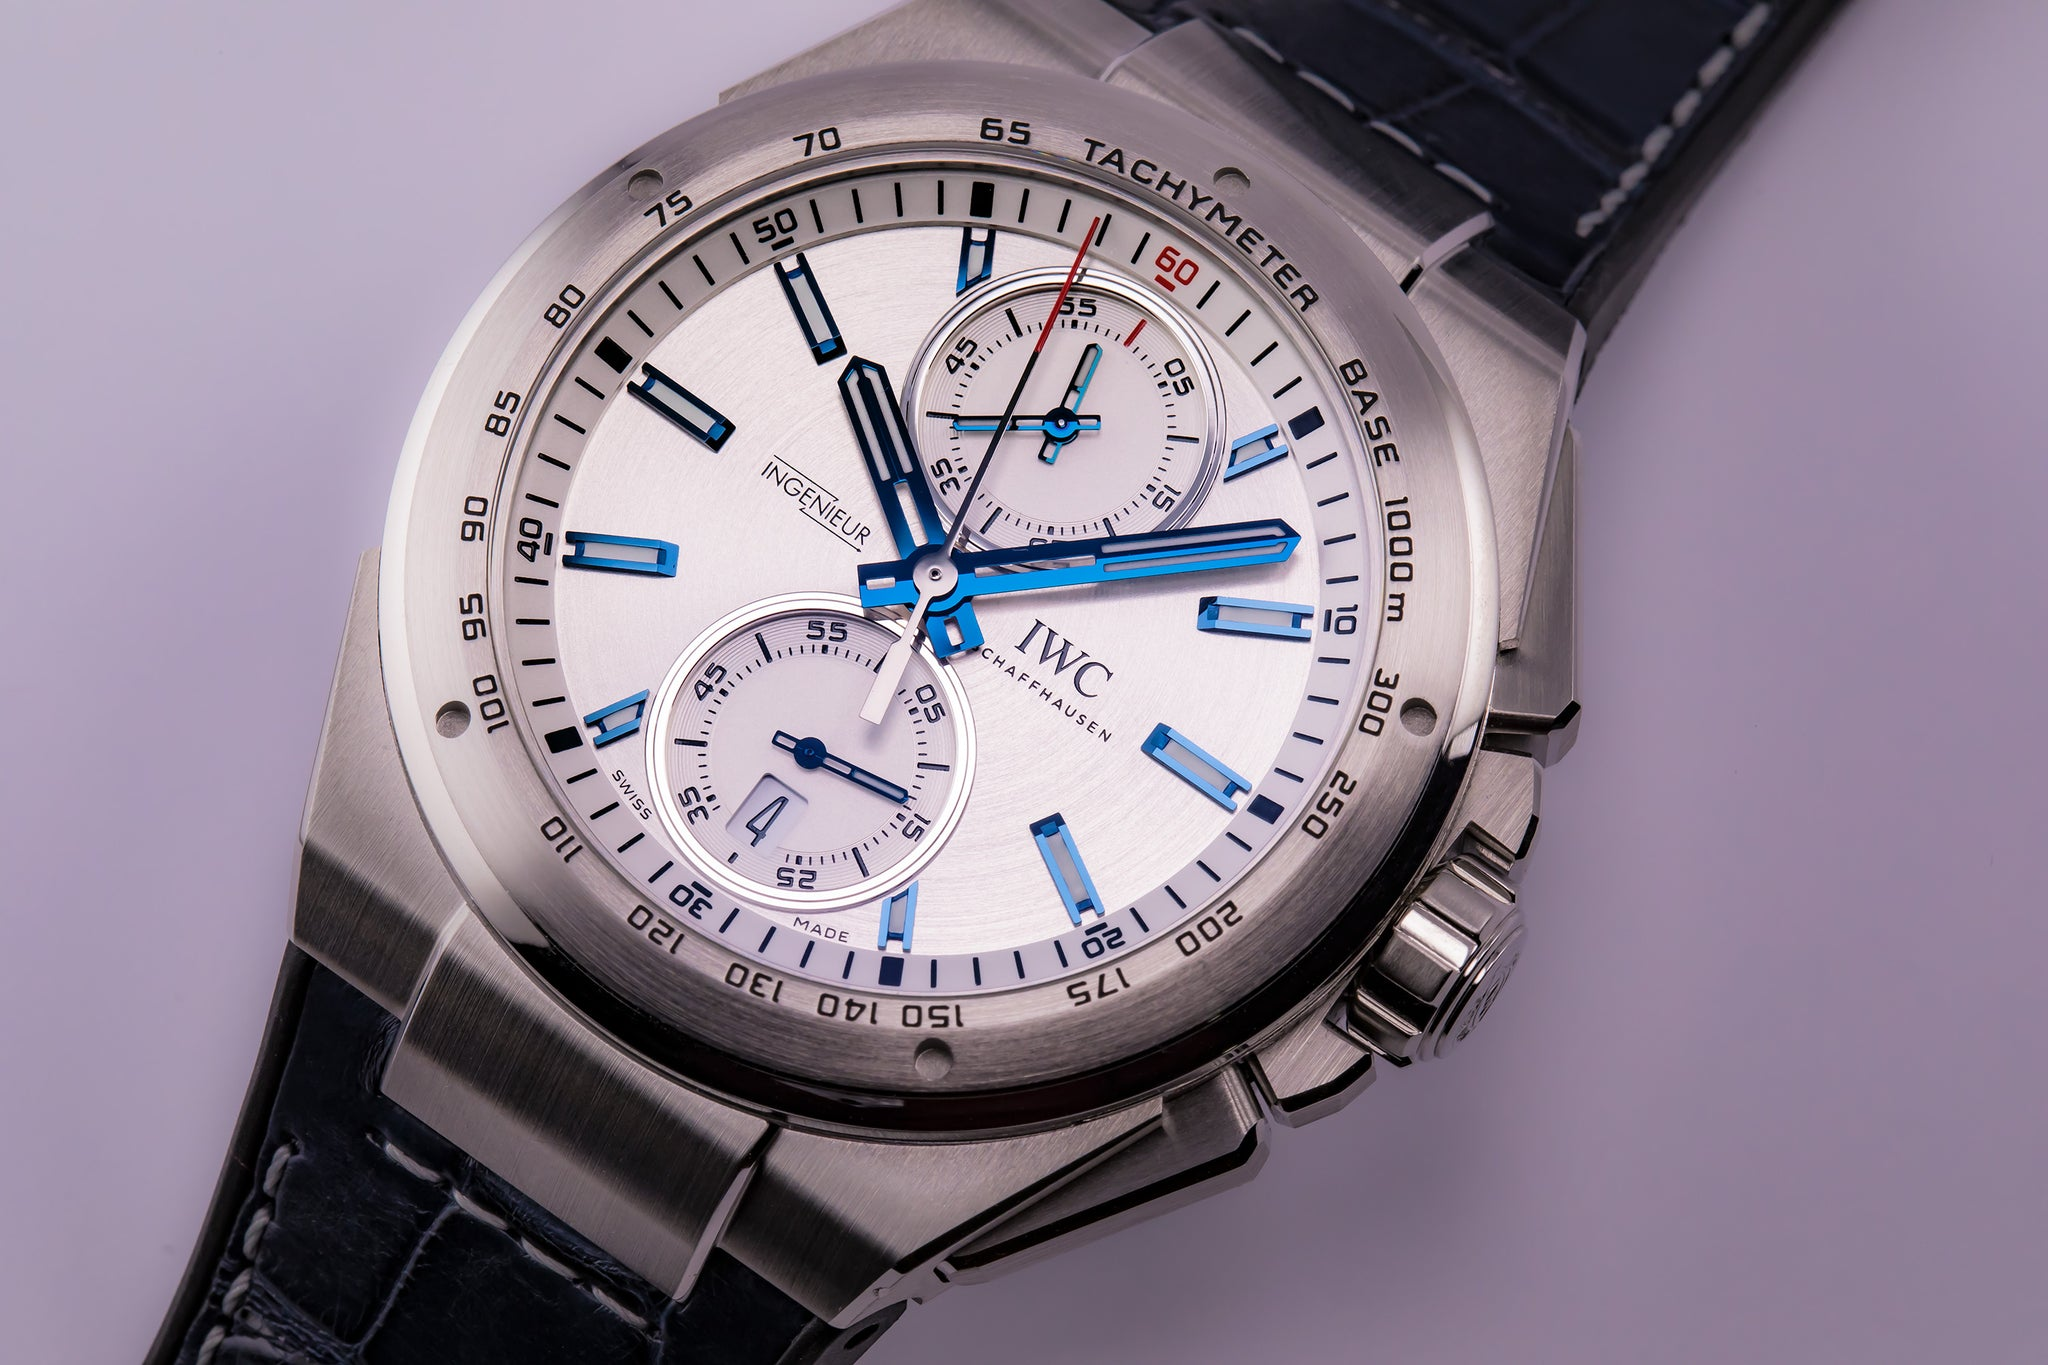 IWC Ingenieur Chronograph Racer Fly-Back Silver Dial